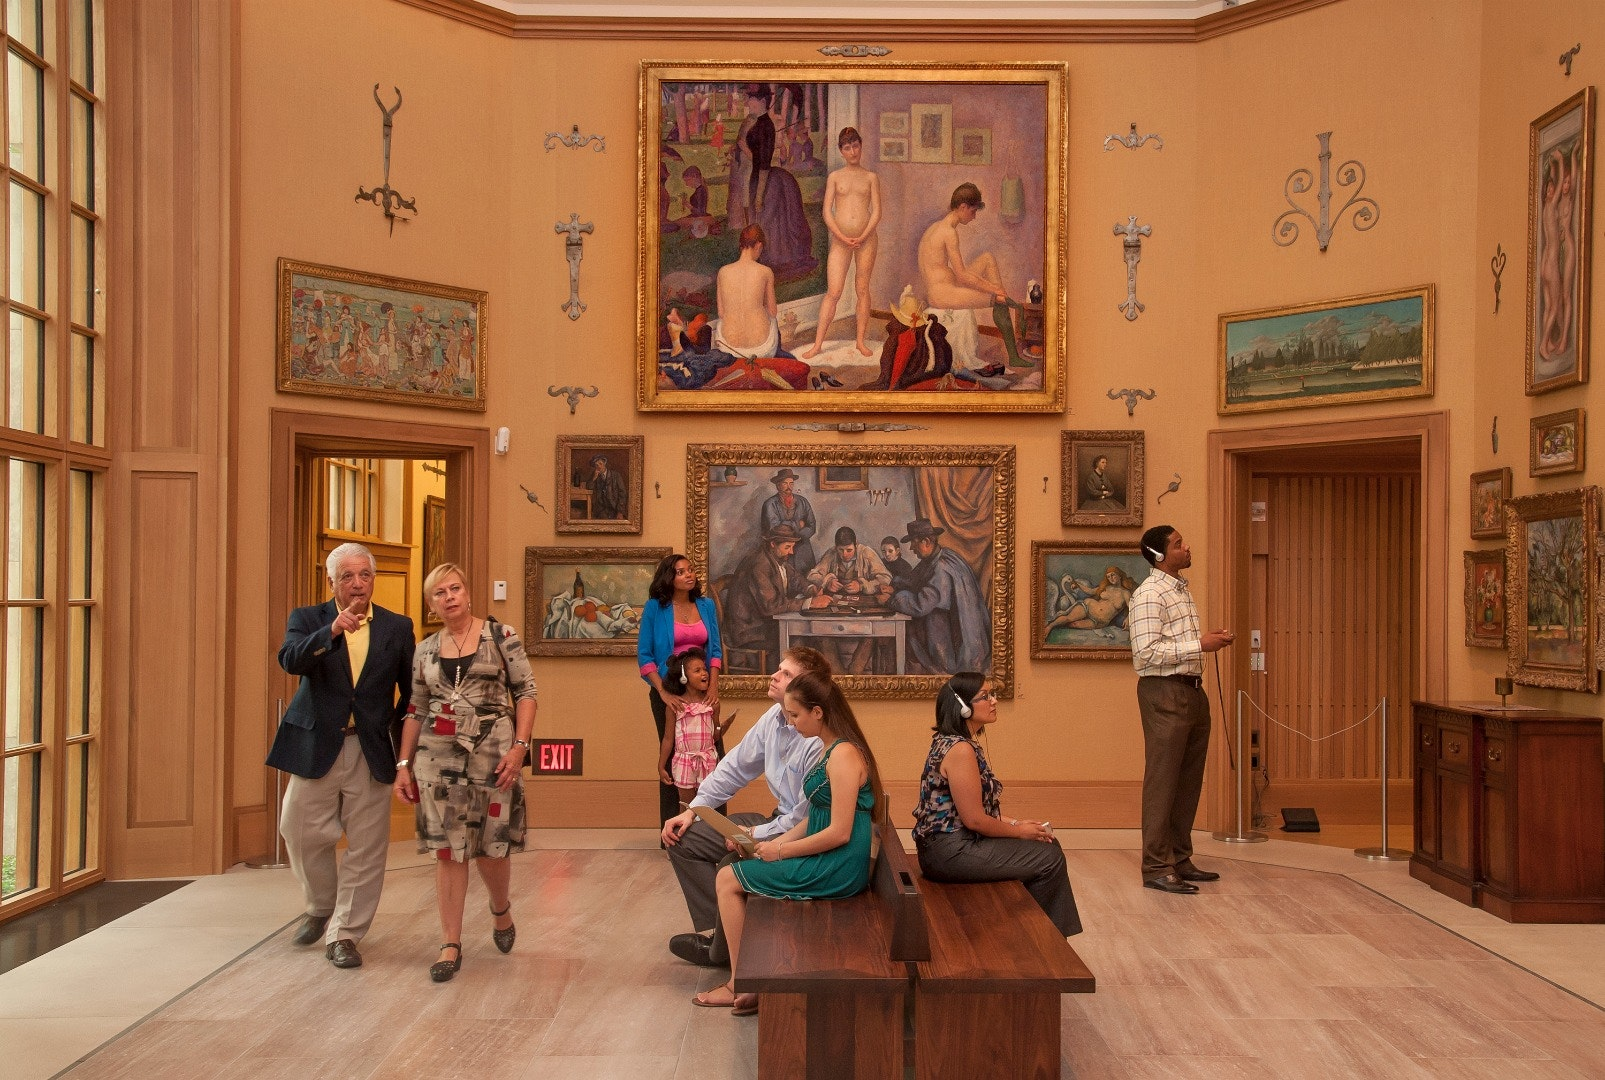 """<p><em>The Barnes Foundation will host and be an integral component of the opera """"The Wake World"""" this season as part of Opera Philadephia's O17. Photo: R. Kennedy for VISIT PHILADELPHIA®</em></p>"""